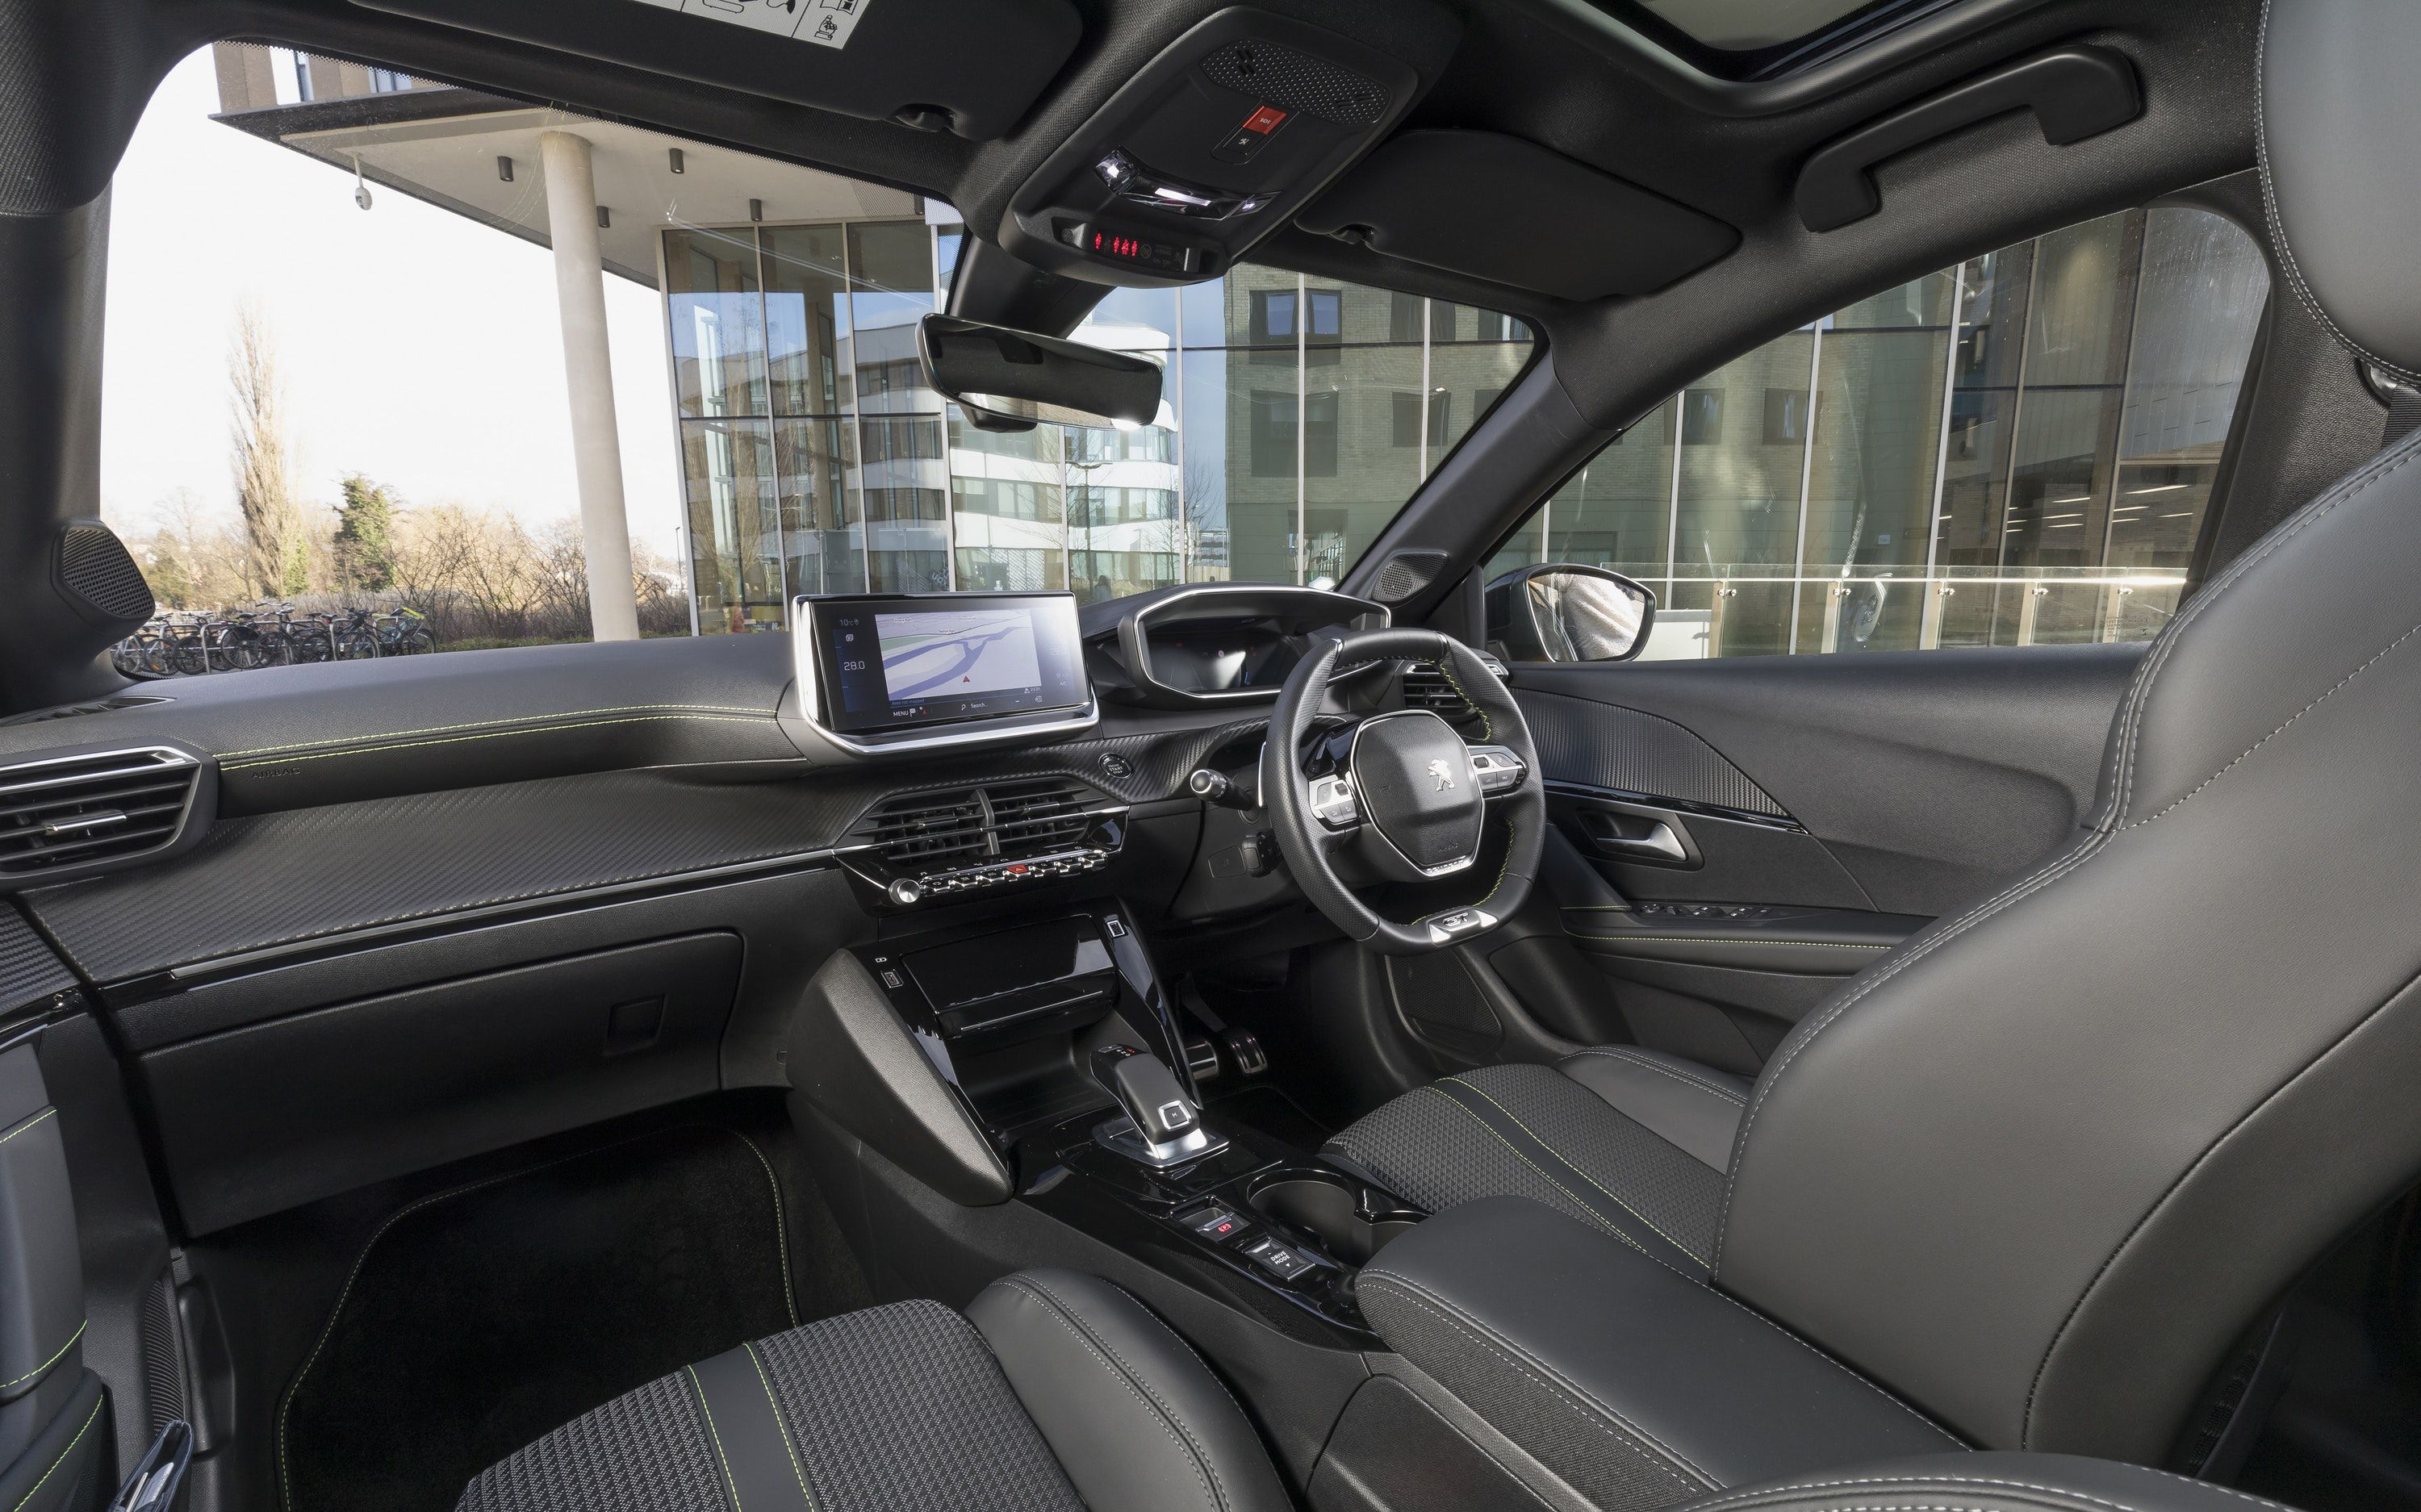 Interior of the Peugeot 208